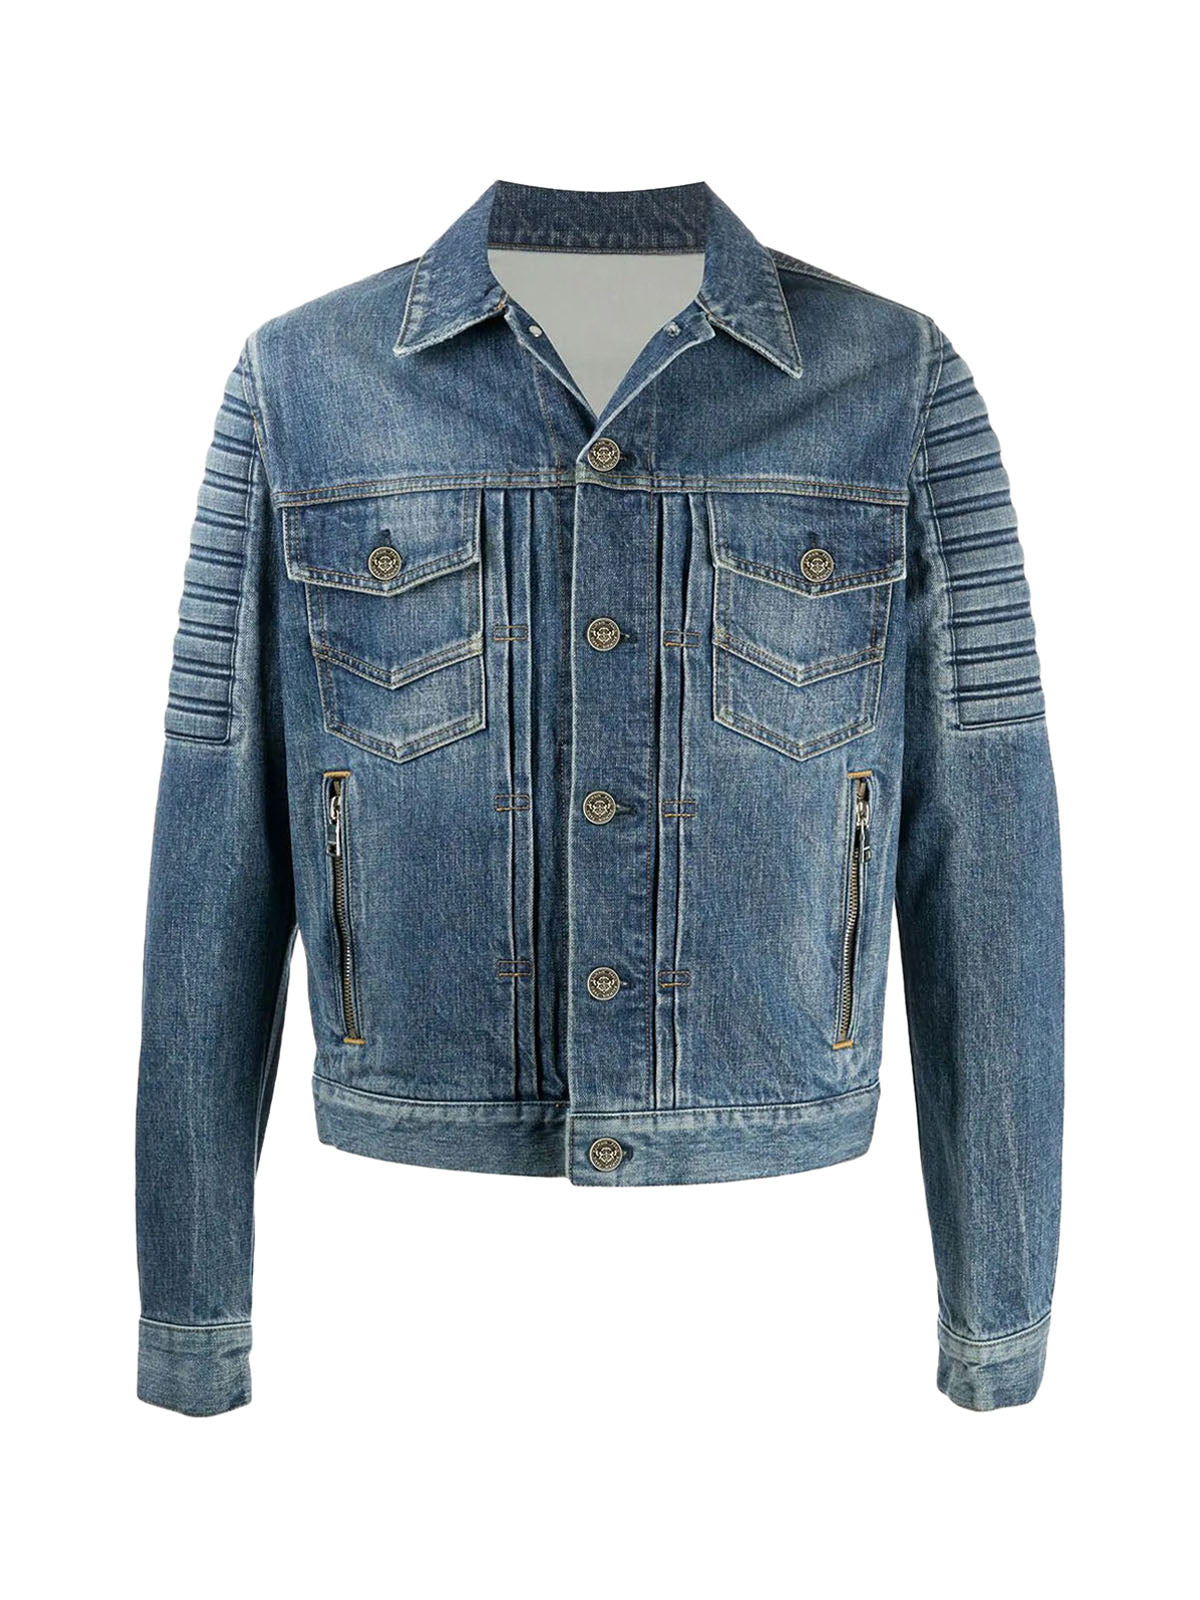 logo-embossed denim jacket